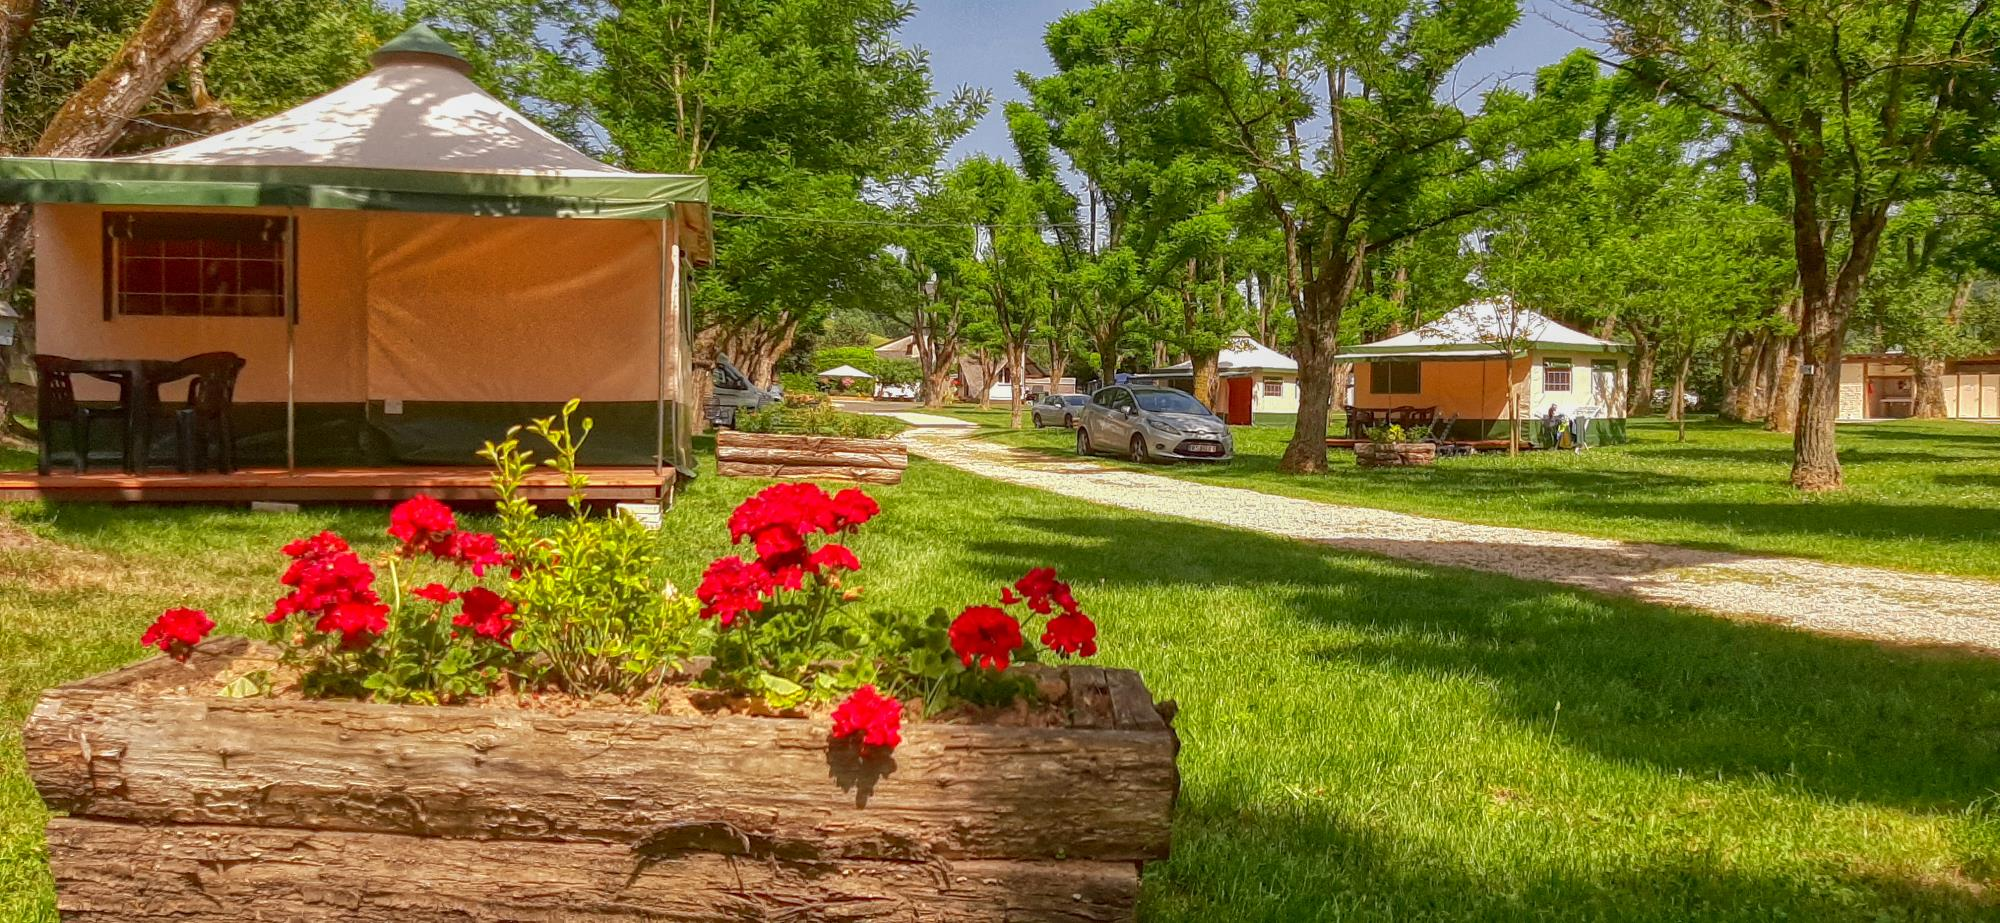 Accommodation - Bengalow Toilé Avec Terrasse Bois - Camping BELLERIVE